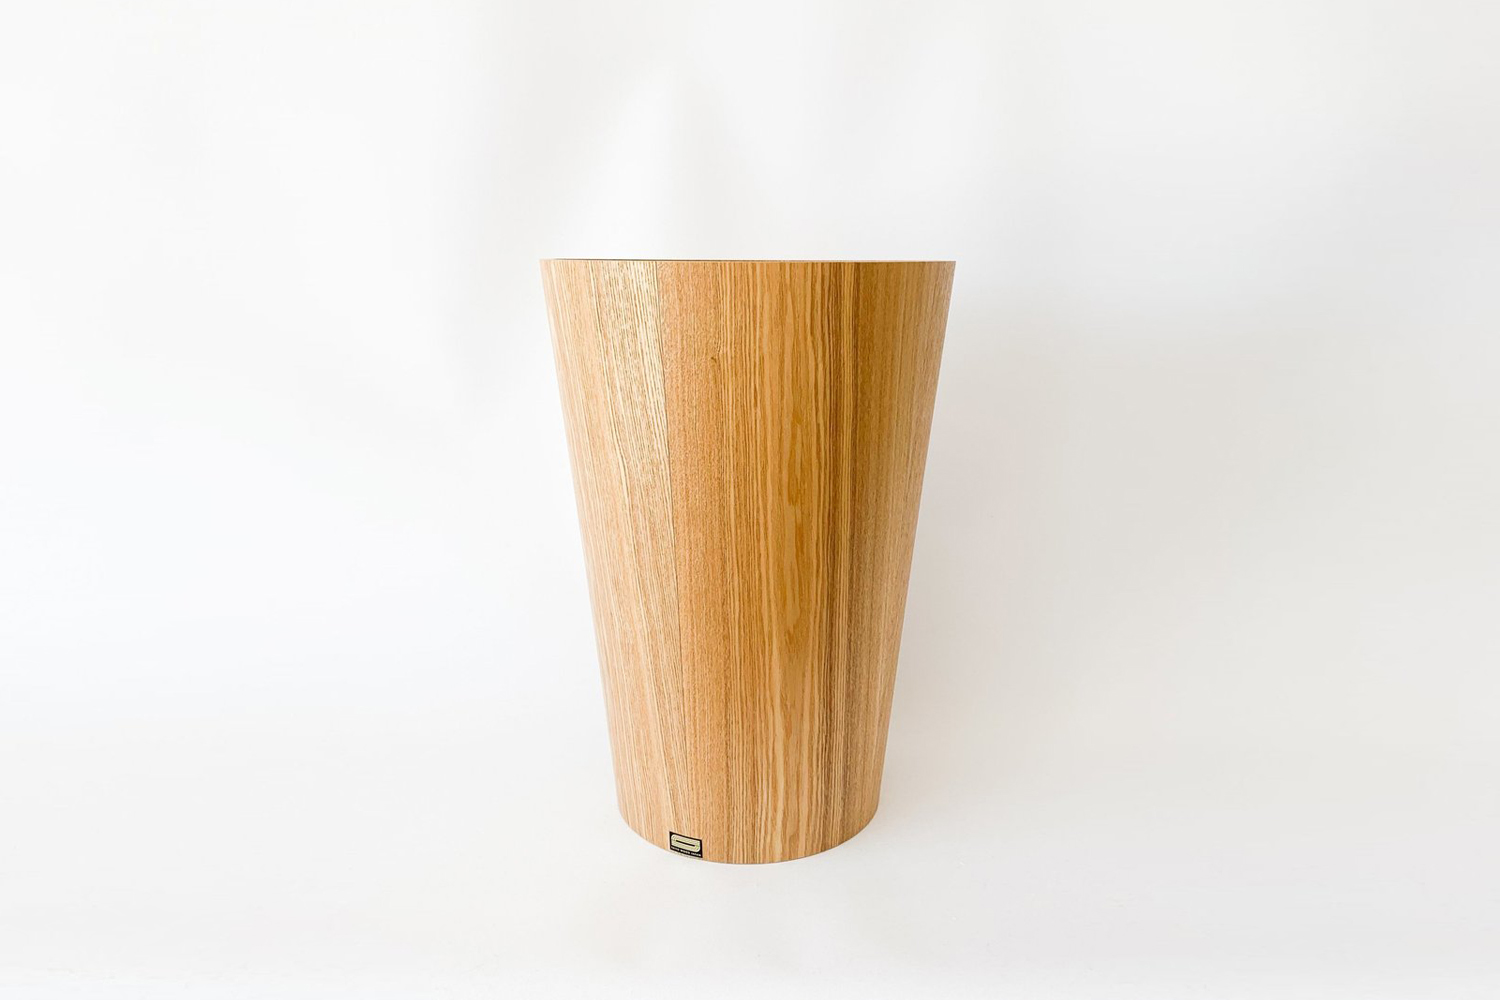 The Large Ash Wood Waste Basket is $5 at Tortoise General Store.